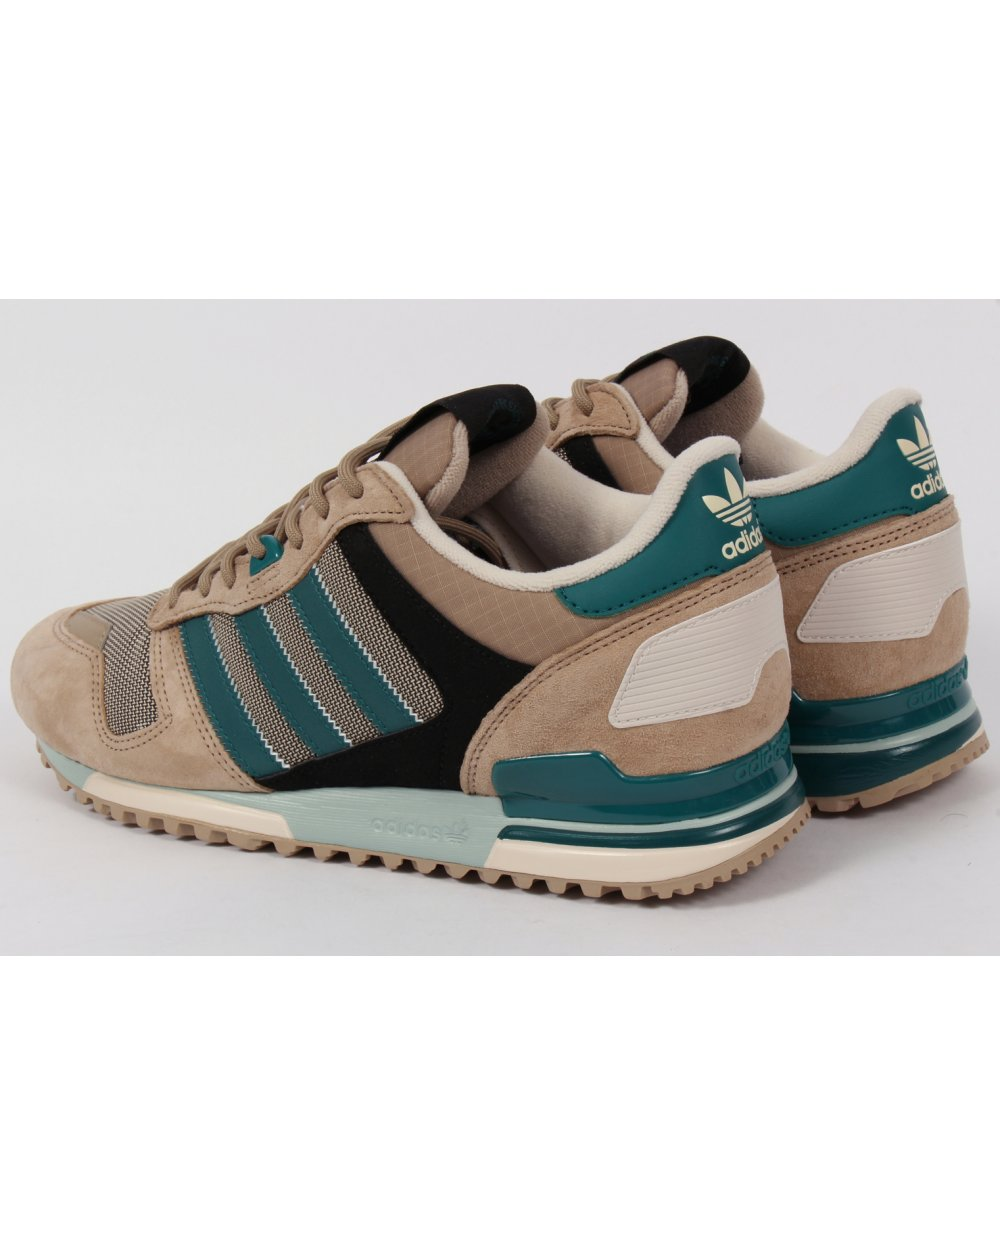 competitive price de076 9e300 Adidas Zx 700 Trainers Hemp/emerald/black